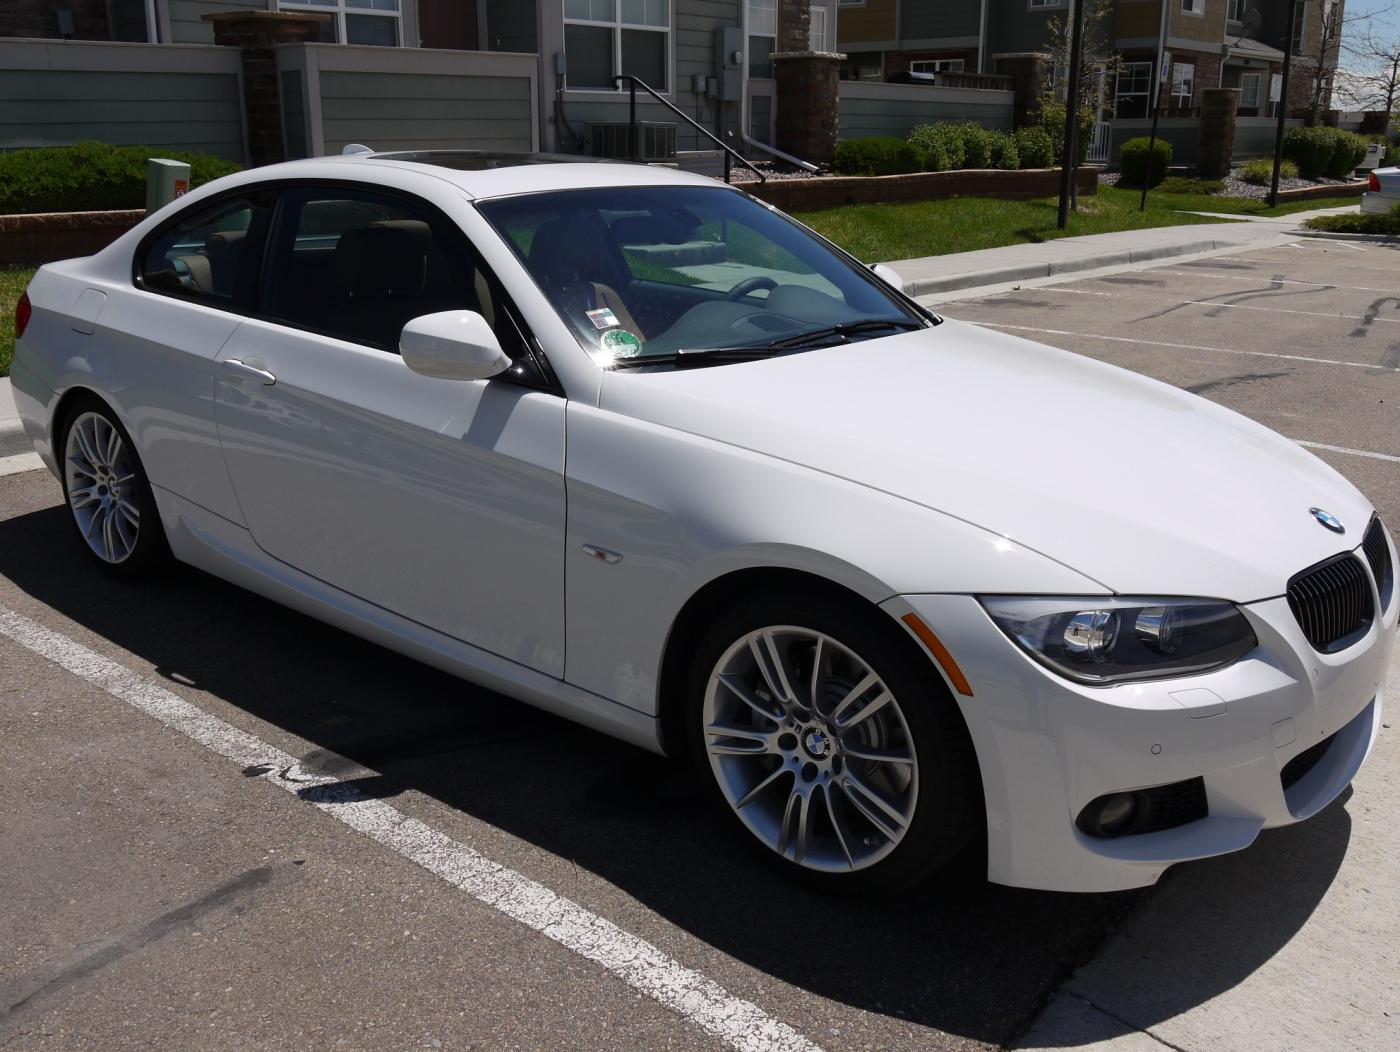 BMW Convertible bmw 335i coupe m sport for sale Lease Takeover / FS 2011 BMW 335i M-Sport Loaded: $517/month